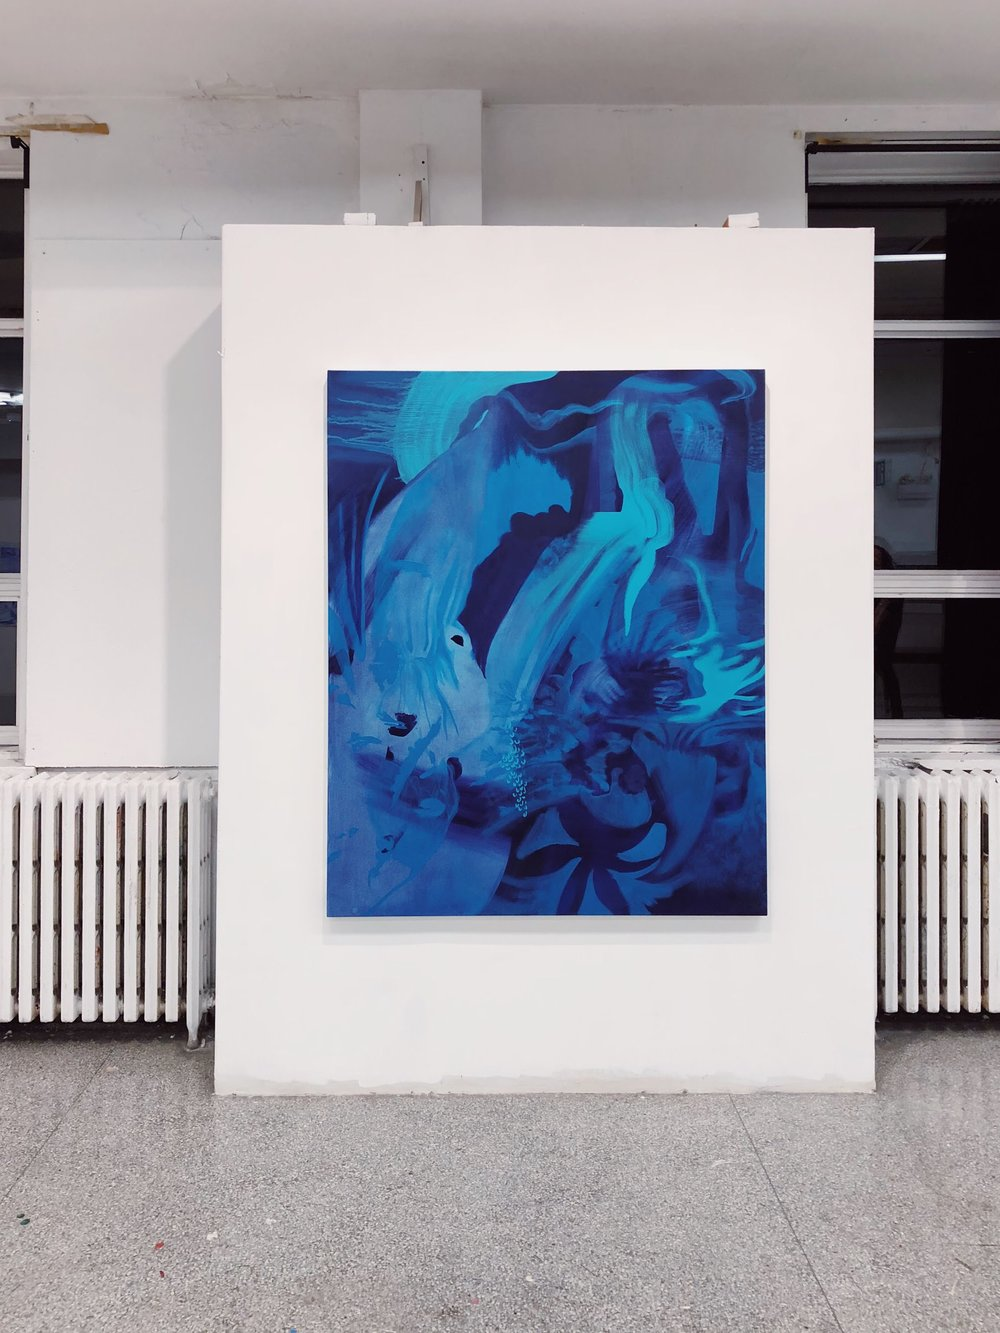 Tiffany April, painting installation, oil on canvas